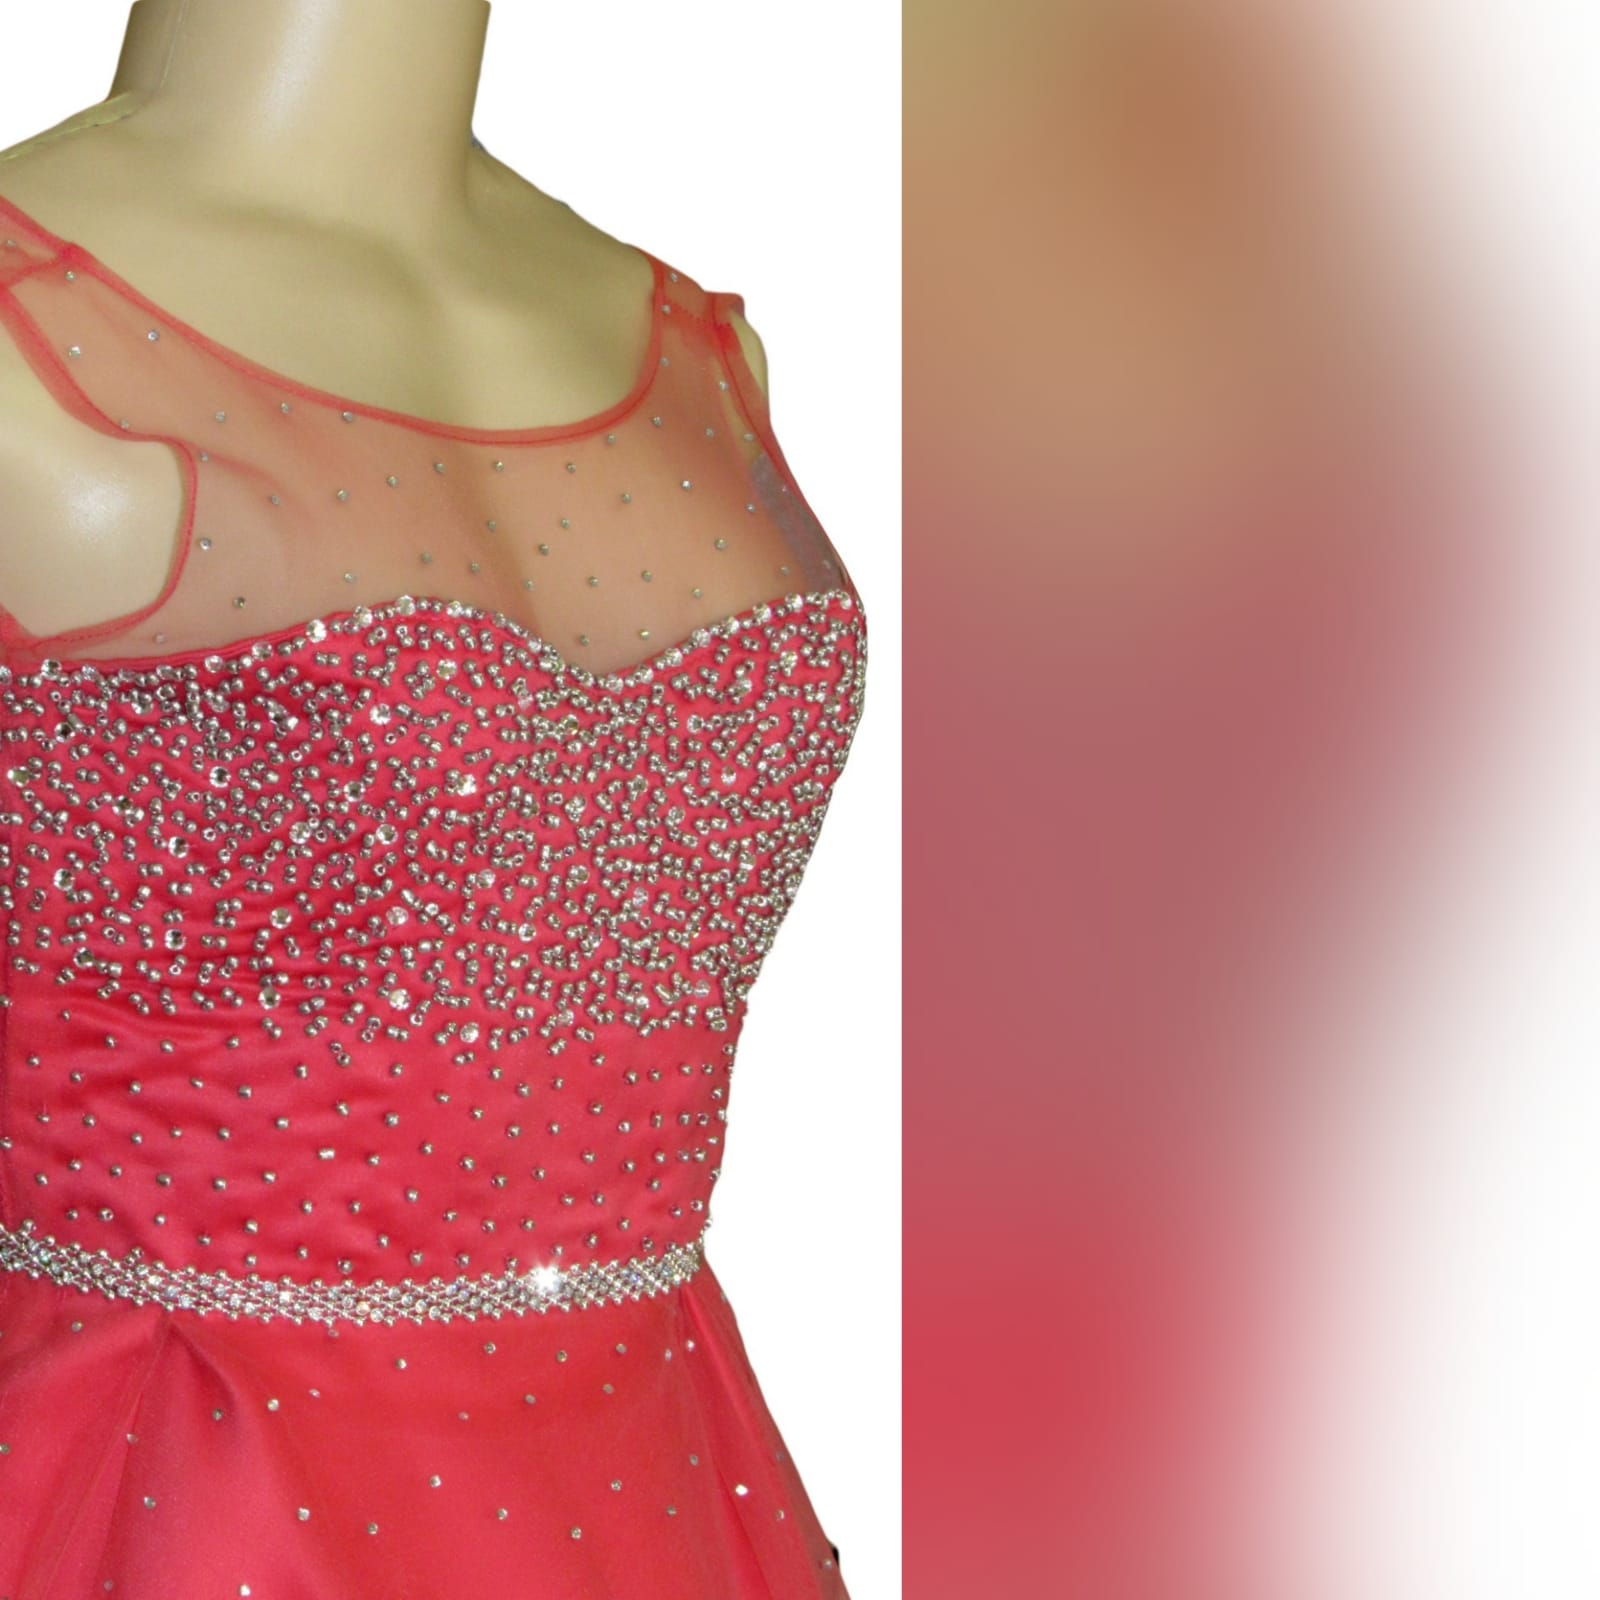 Bright coral and silver short evening gala dress 6 bright coral and silver short evening gala dress. Bodice and belt in silver beads with a few scattered beads at the bottom of the dress